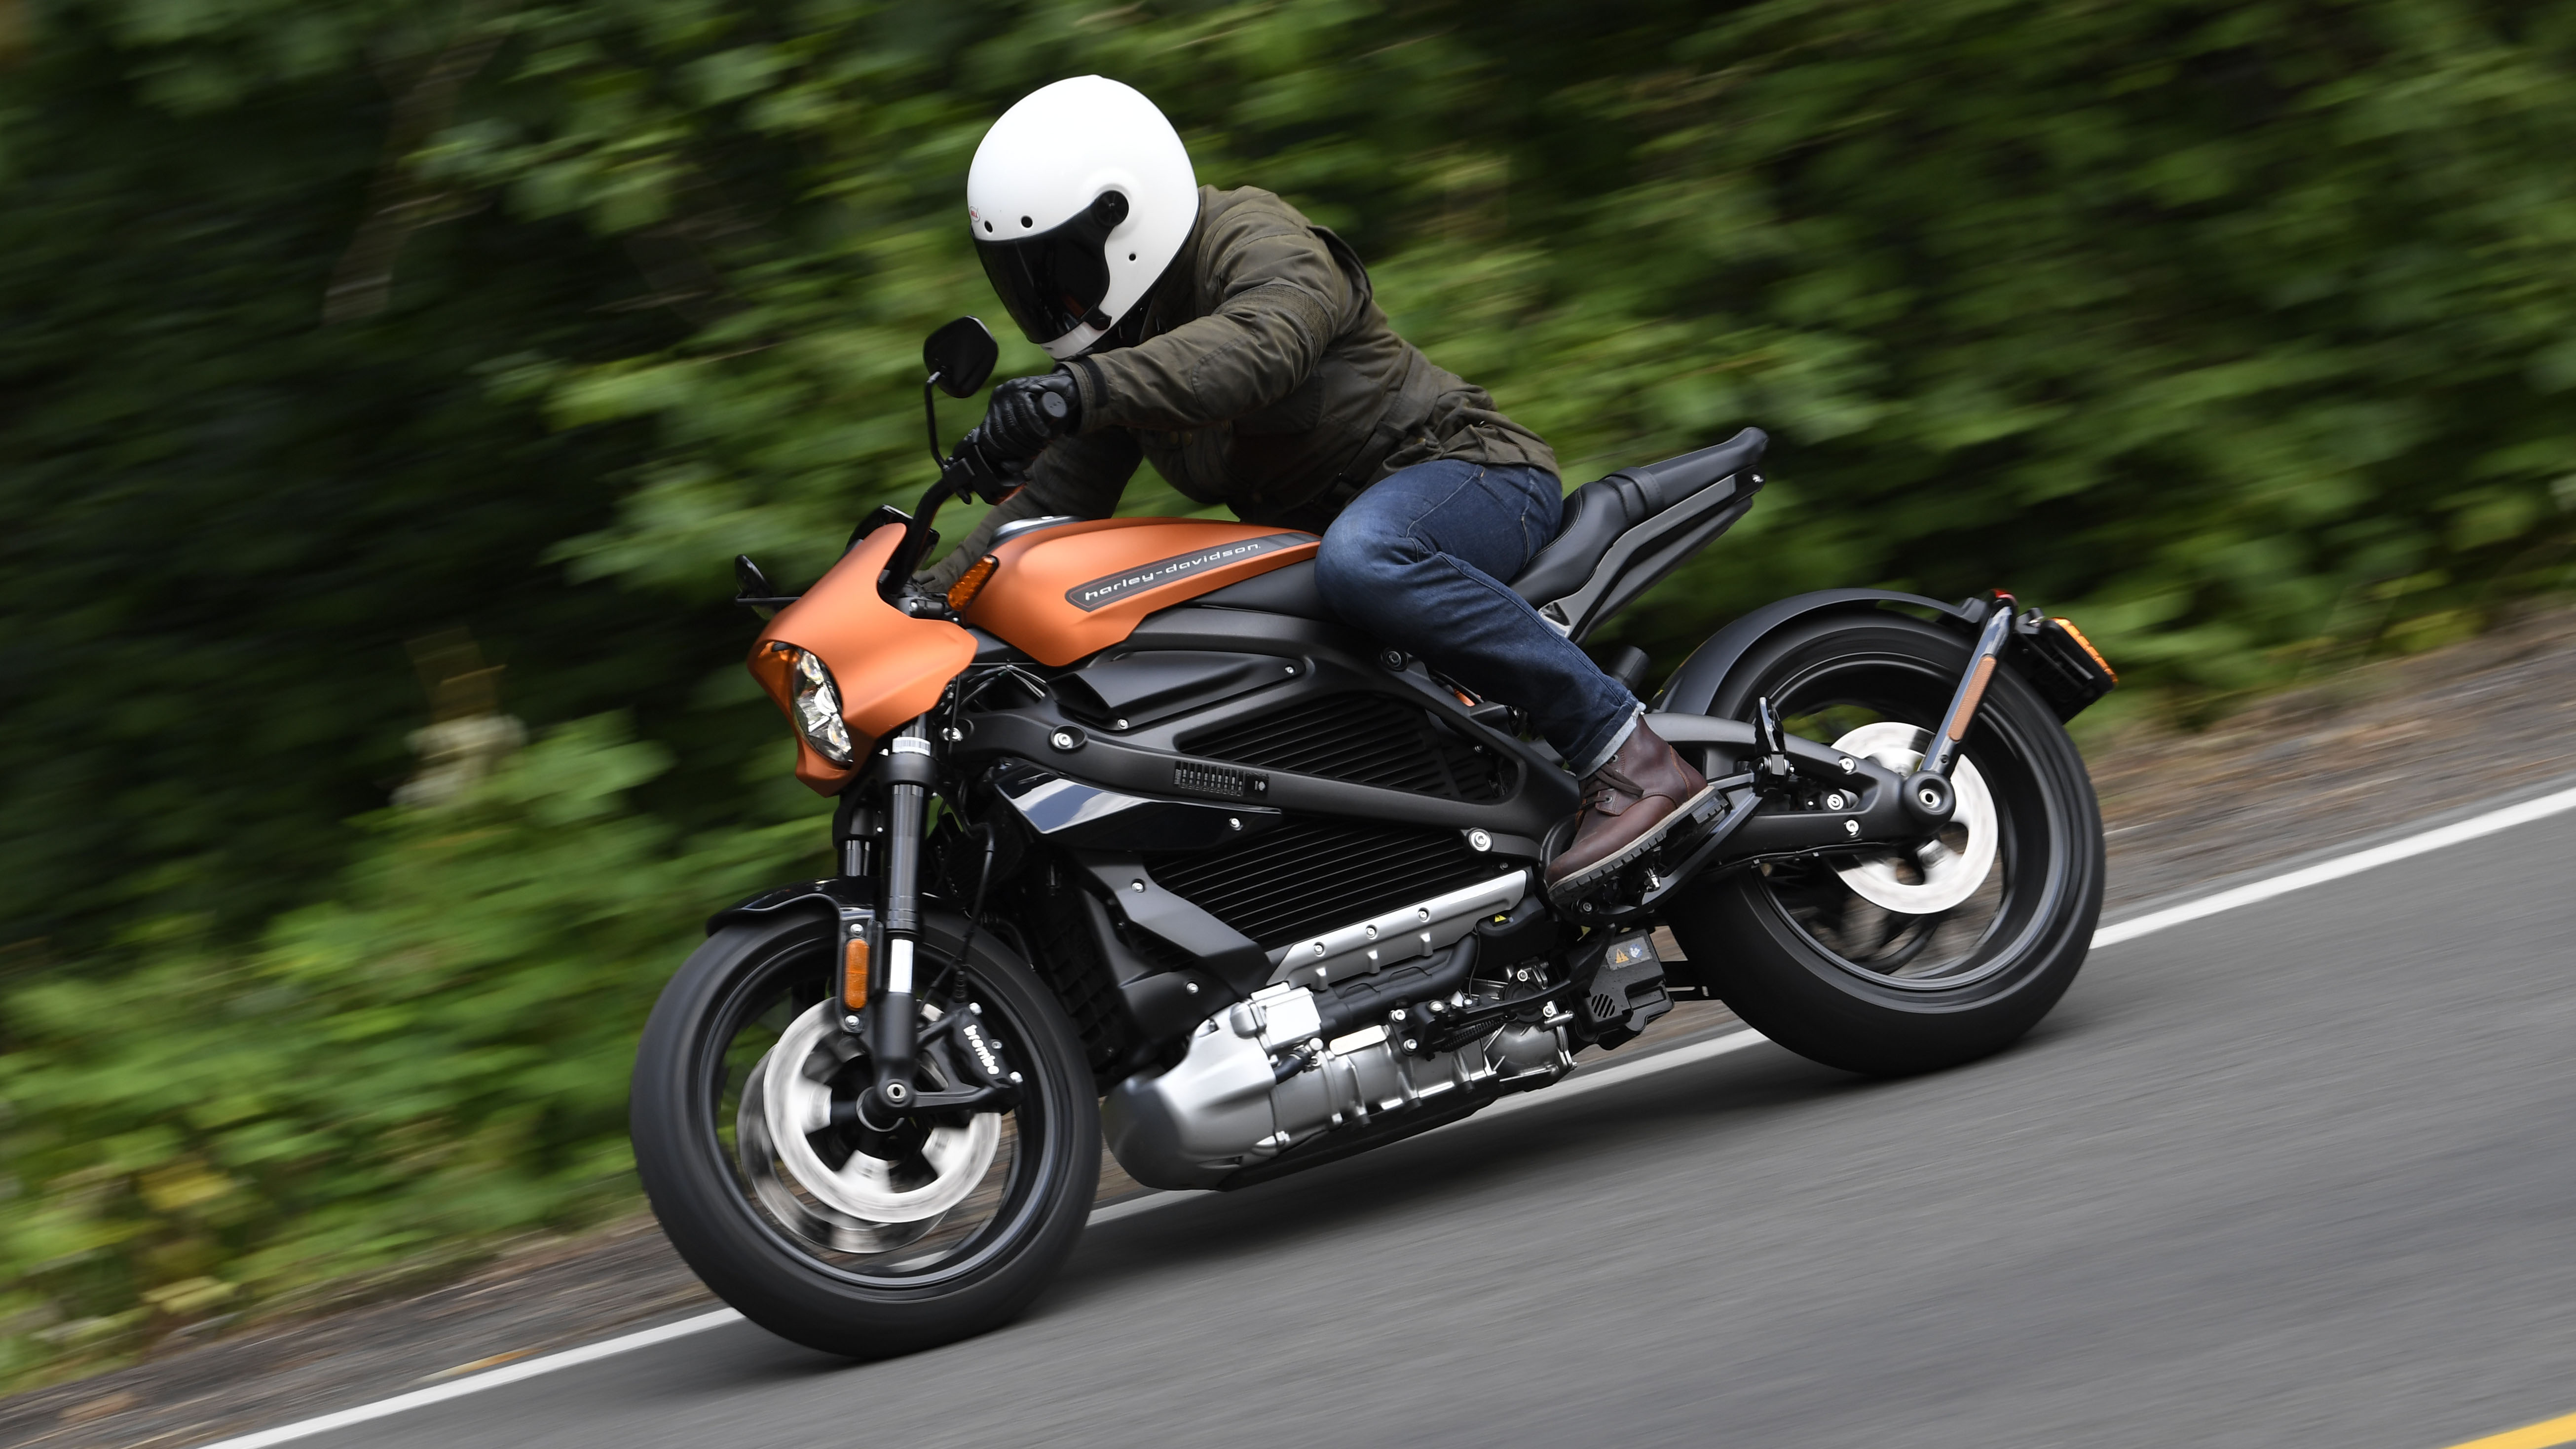 Harley Davidson Livewire review: all-electric bike tested   Top Gear